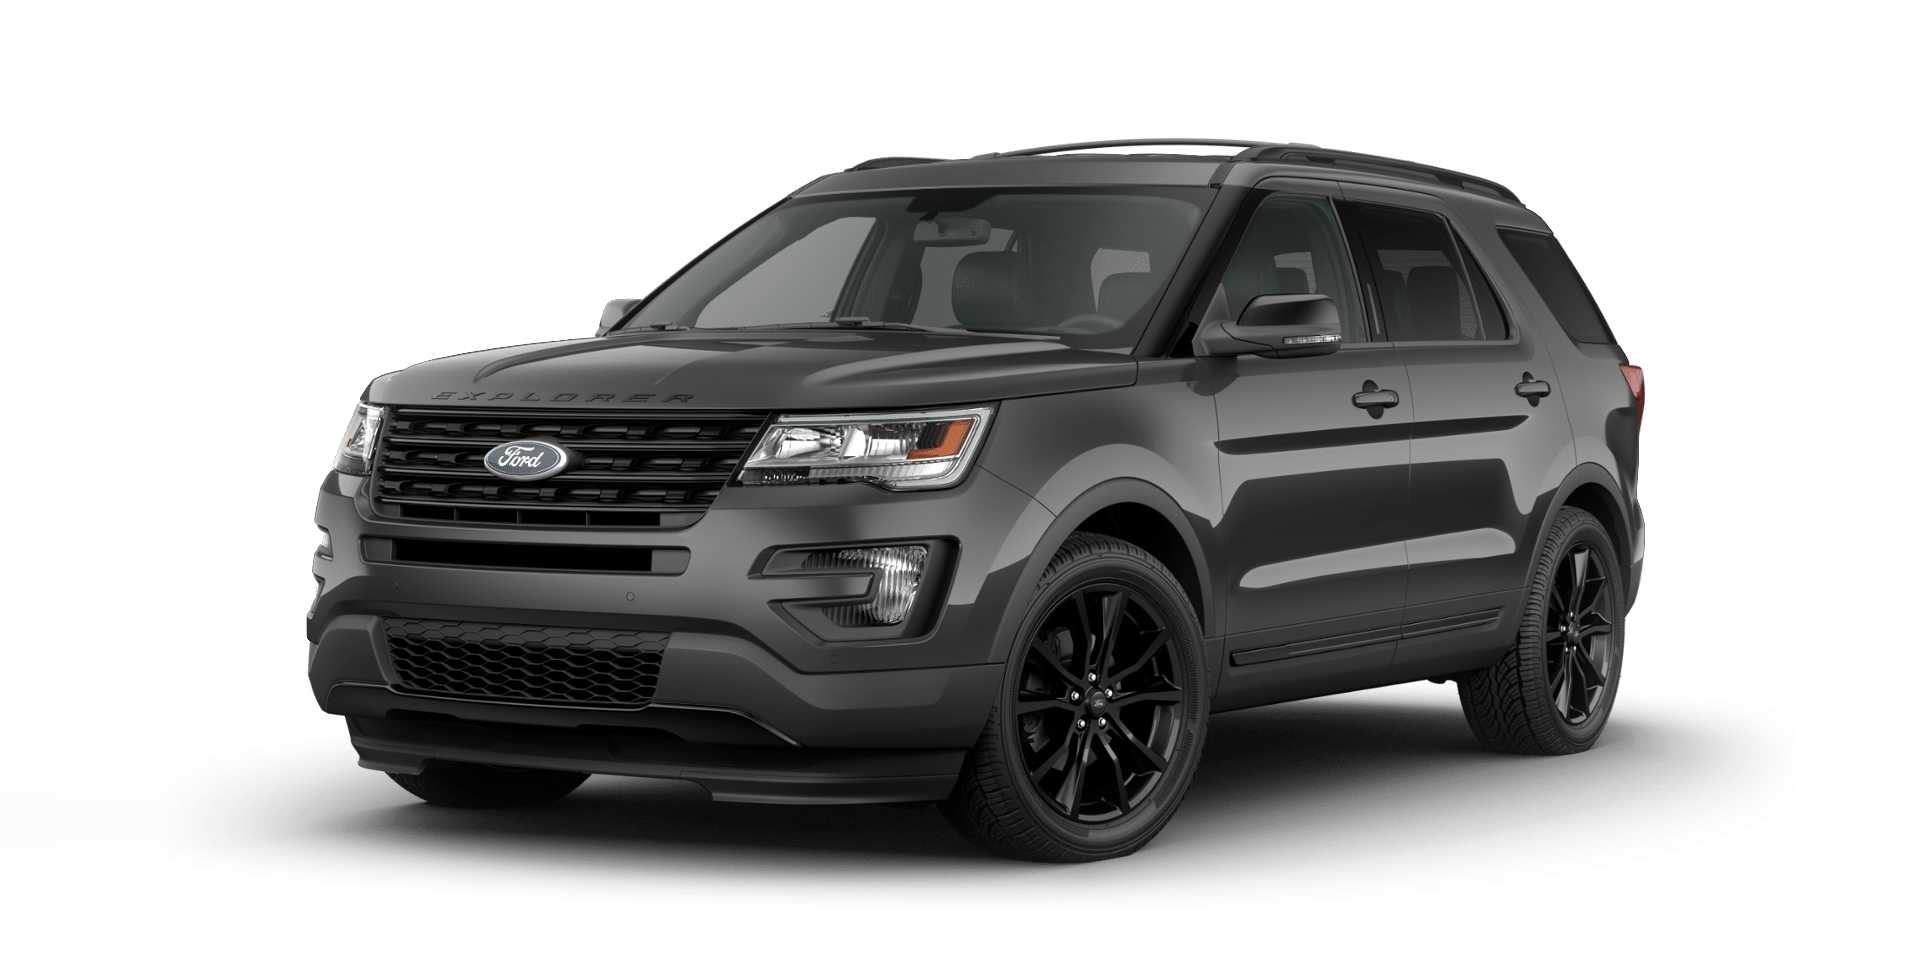 New Ford Explorer Vs New Range Rover Hmmmm New Ford Explorer